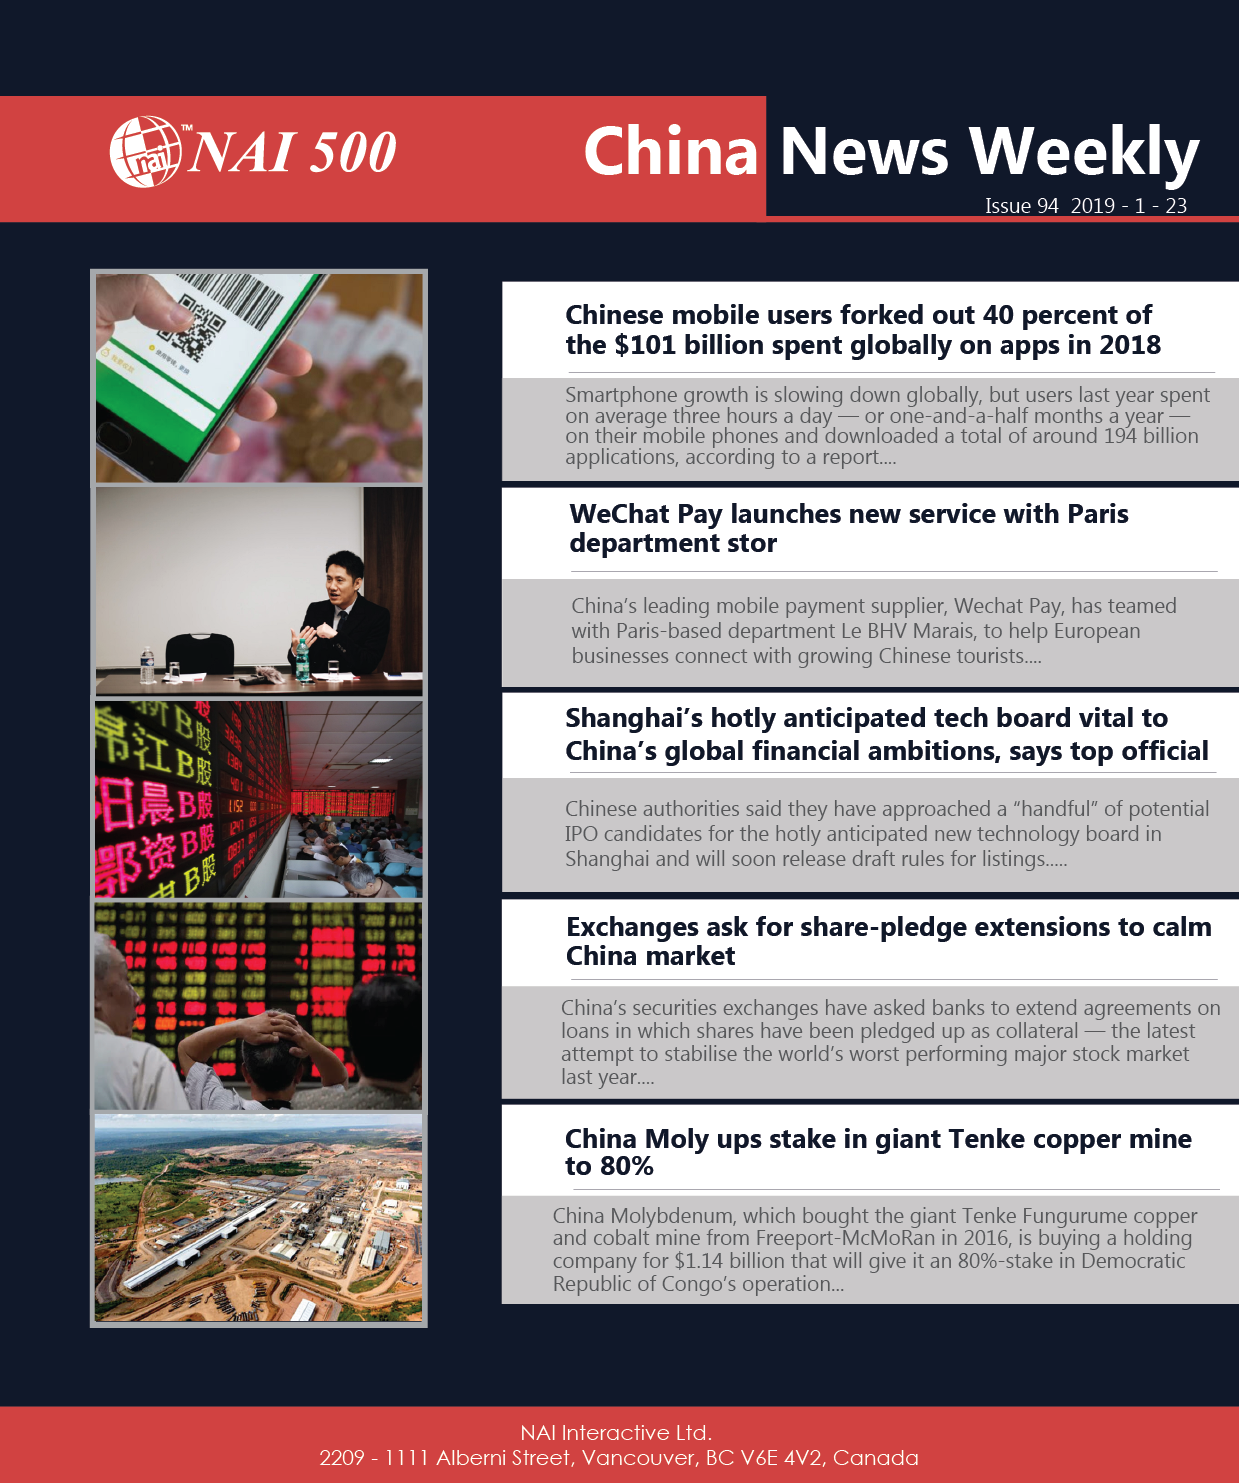 China News Weekly 94 - Chinese mobile users forked out 40